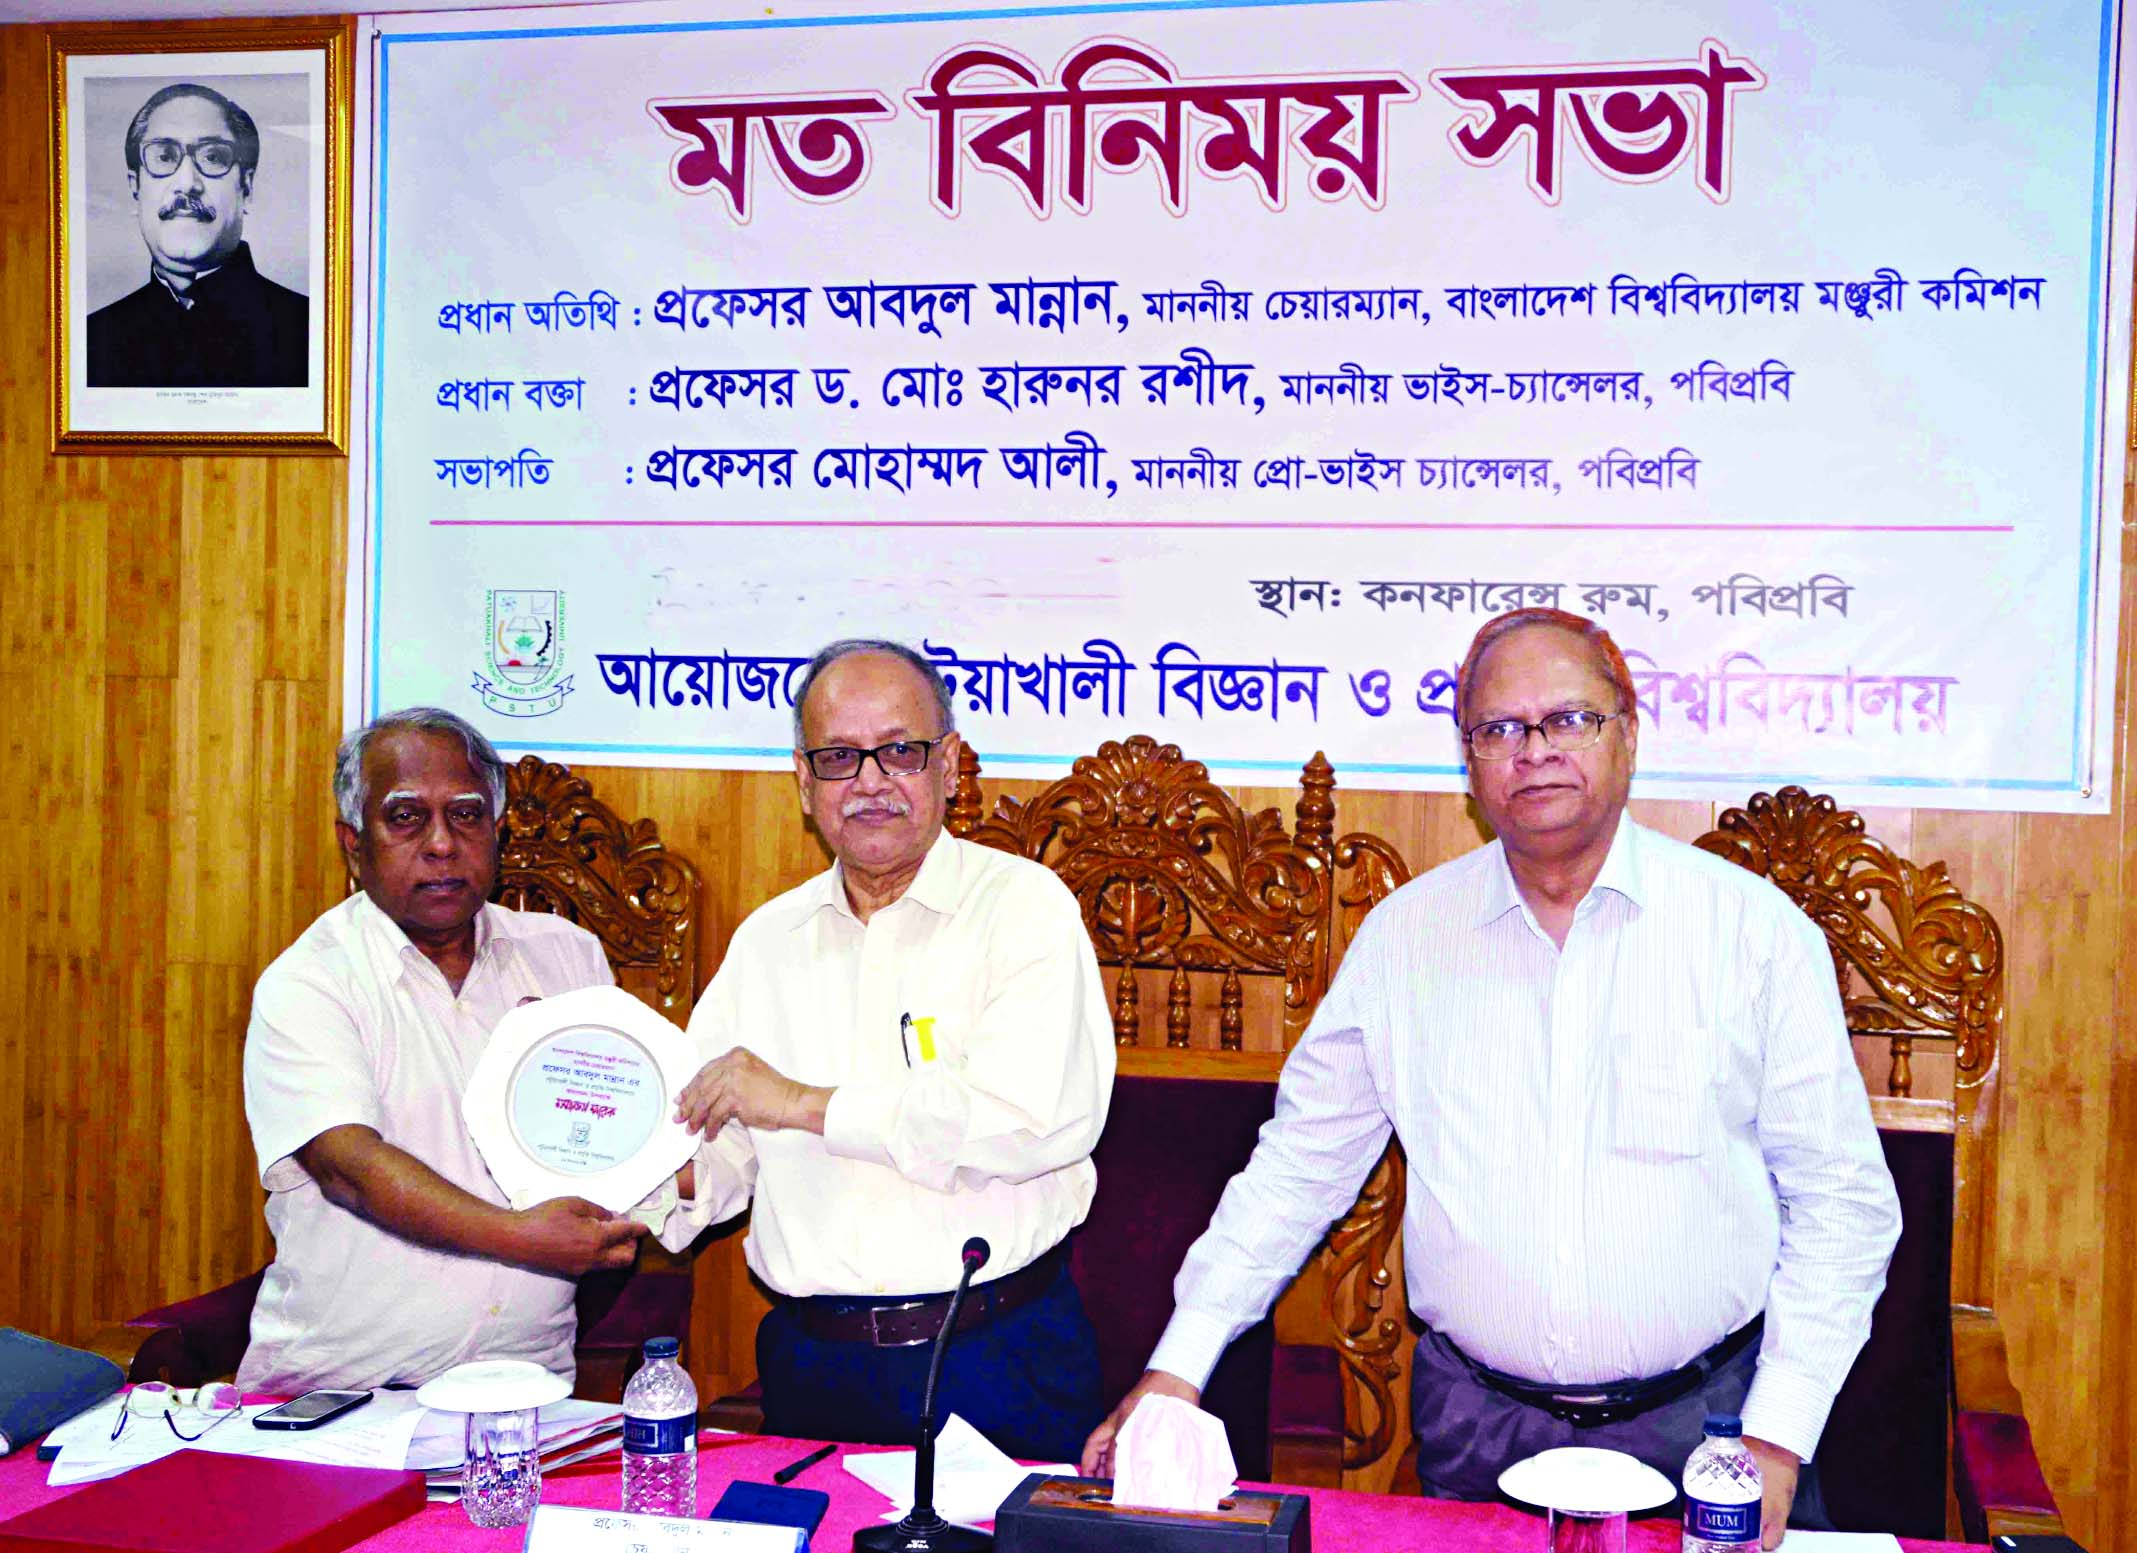 PATUAKHALI: Prof Dr Harun-ur- Rashid, VC, Patuakhlai University of  Science and Technology giving a crest to Prof Abdul Mannan, Chairman, University Grants Commission during at view exchange meeting at the University recently.